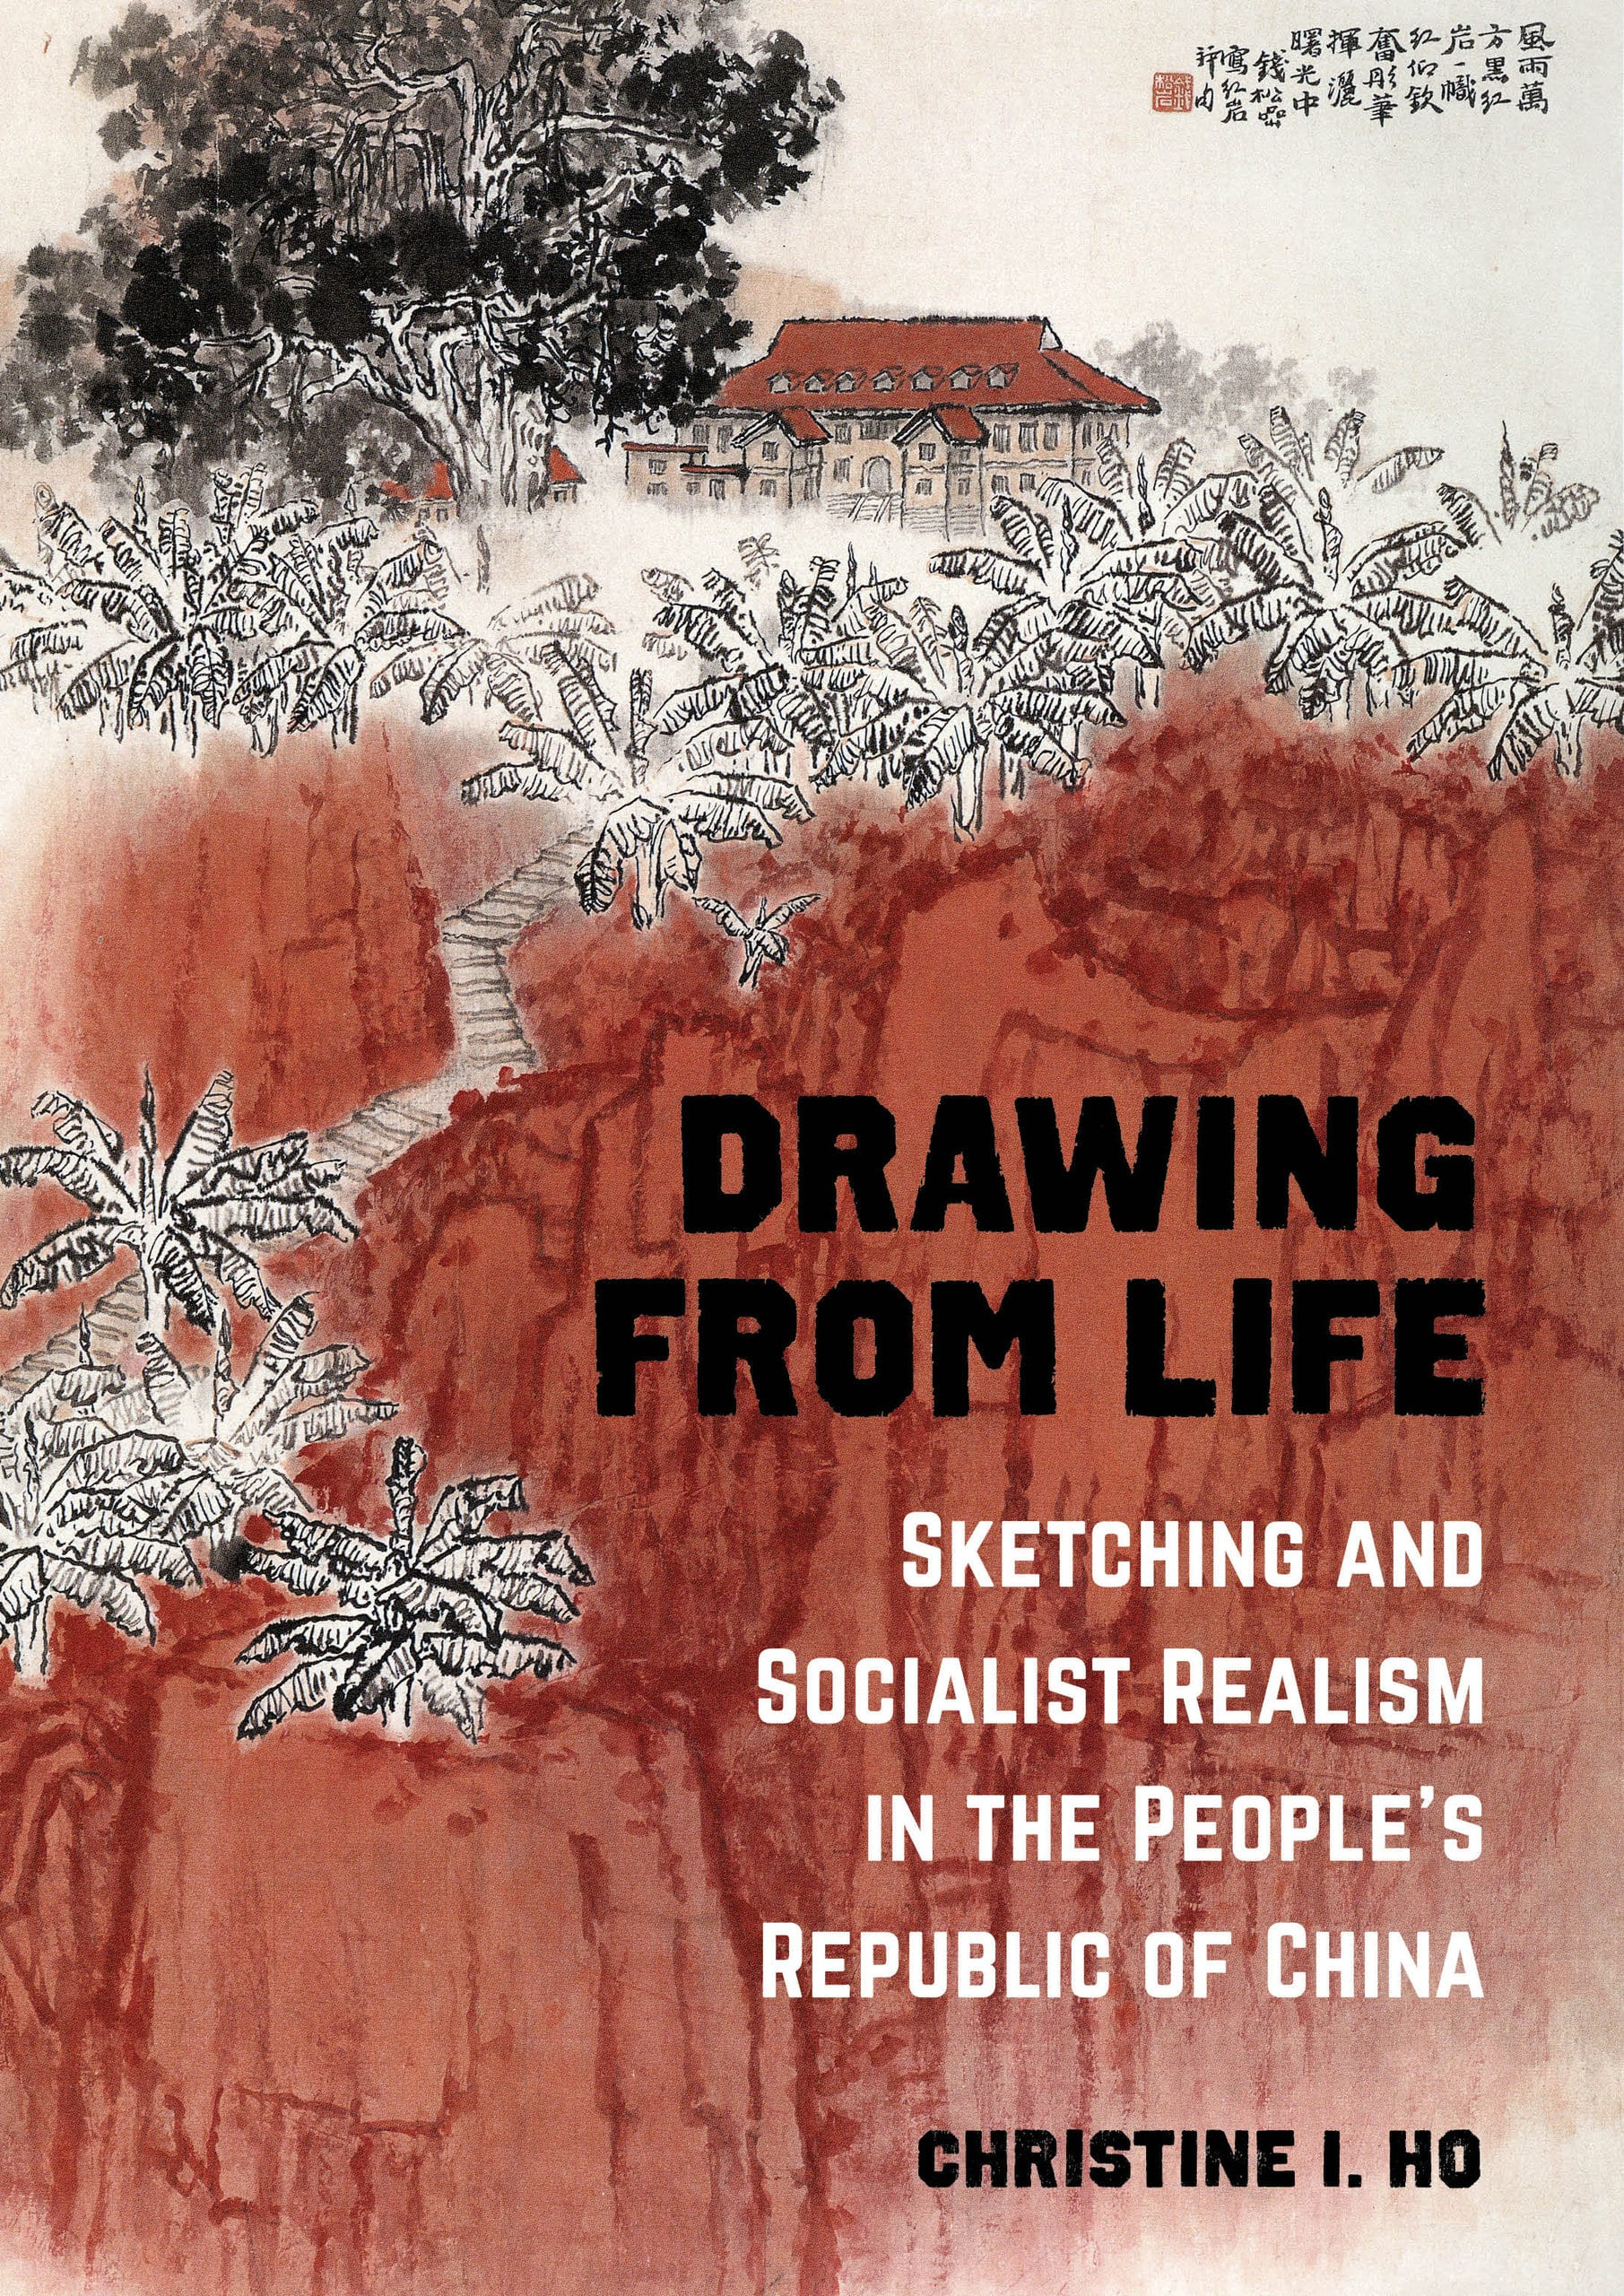 """Cover of the book """"Drawing from Life: Sketching and Socialist Realism in the People's Republic of China"""" by Christine I. Ho. The background shows a painting of red cliffs with a red-roofed houe perched atop, along with black-and-white trees and Chinese characters."""